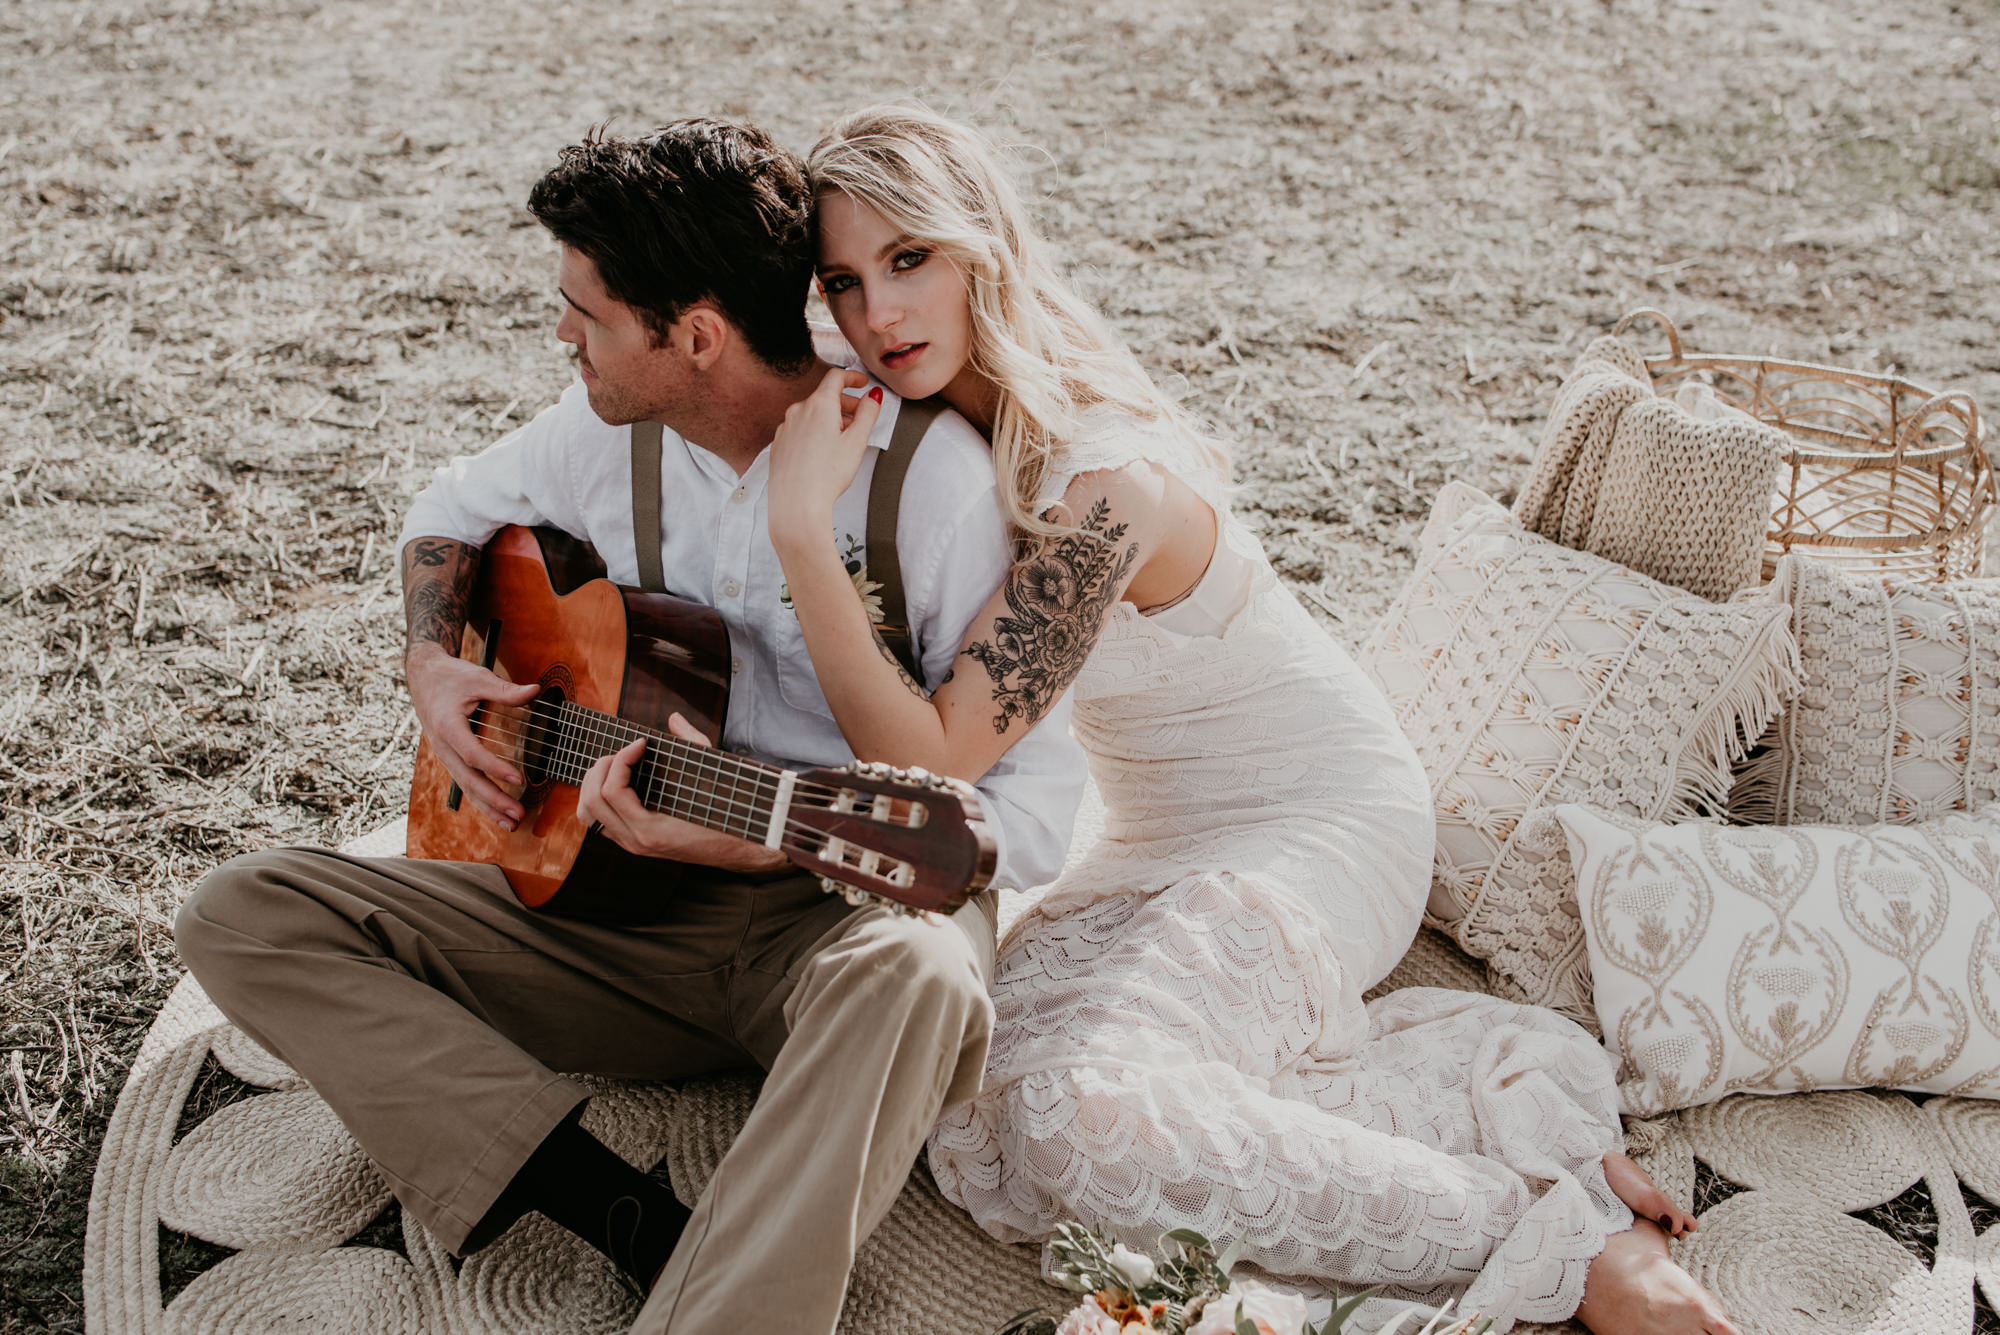 The bride looks at the camera while her husband plays guitar.